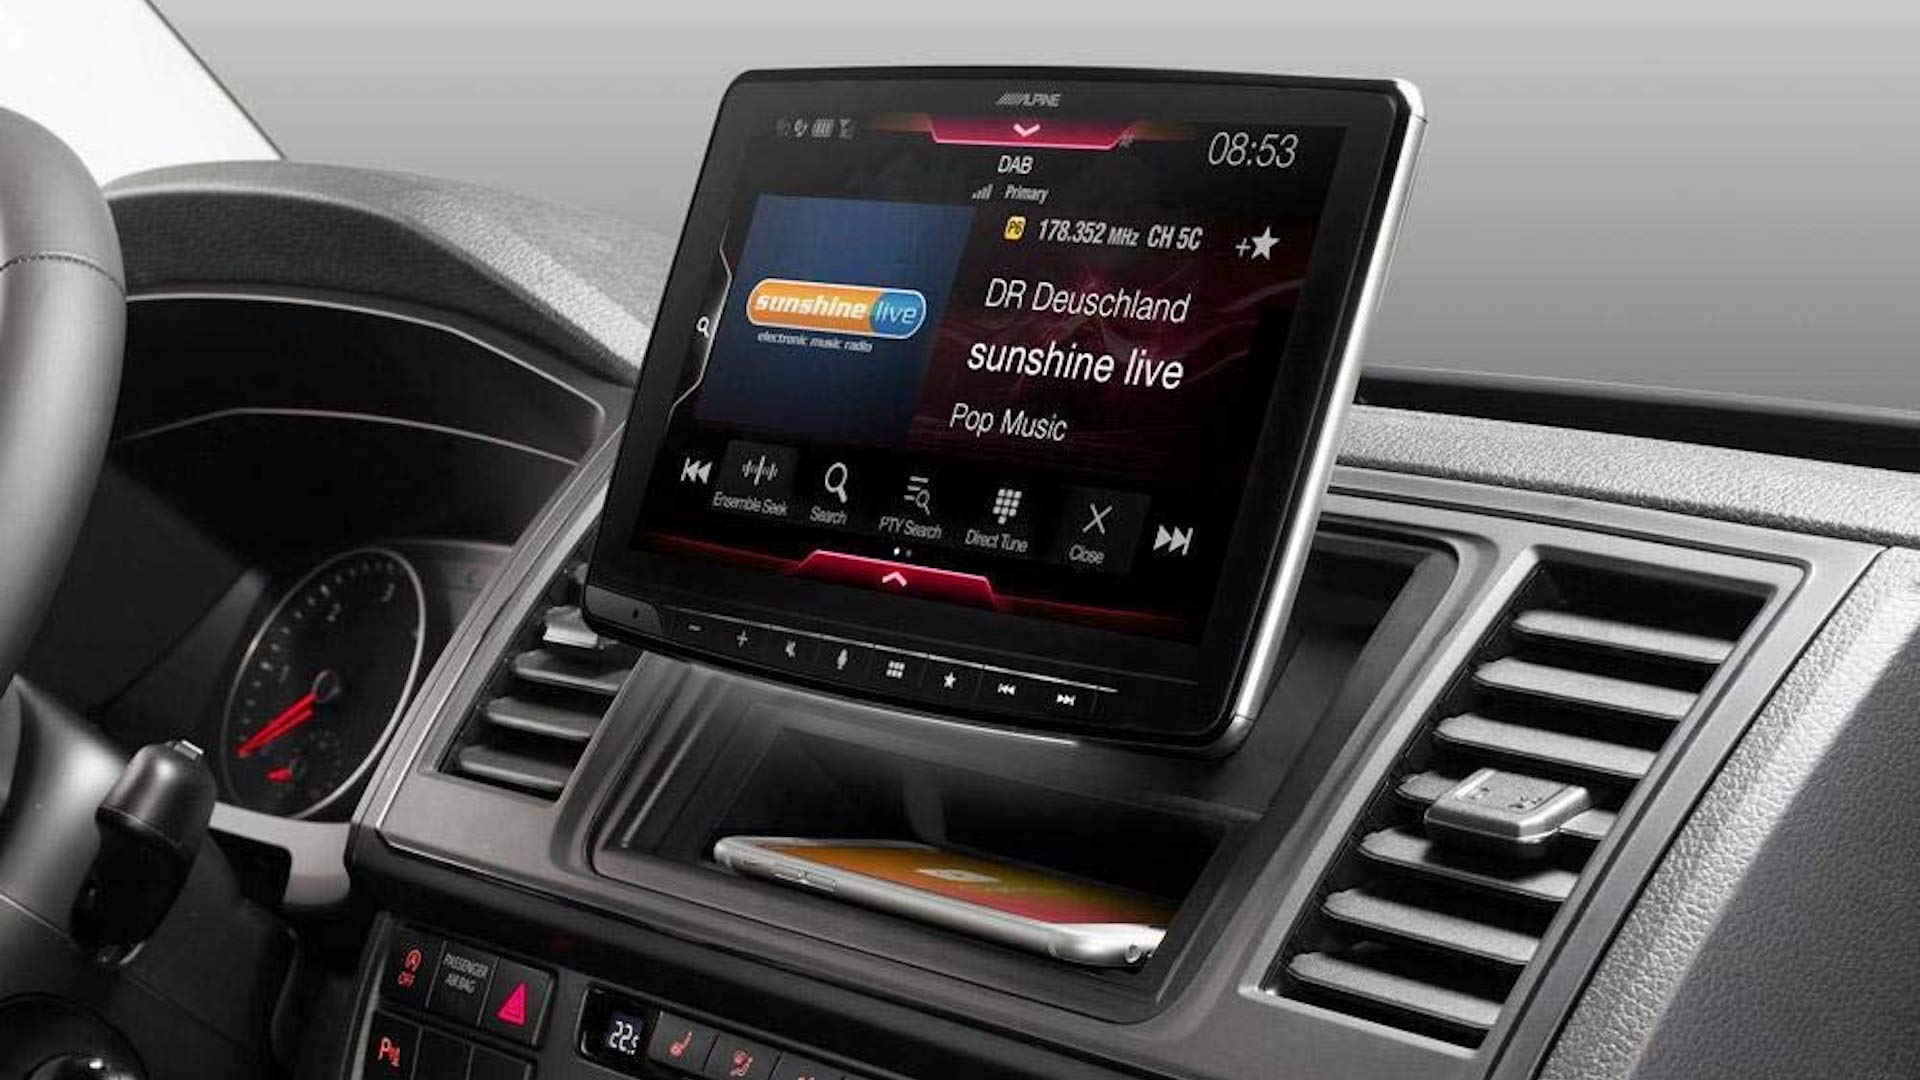 Best Android Head Unit 2021 Best Android Auto head unit 2020: improve your in car